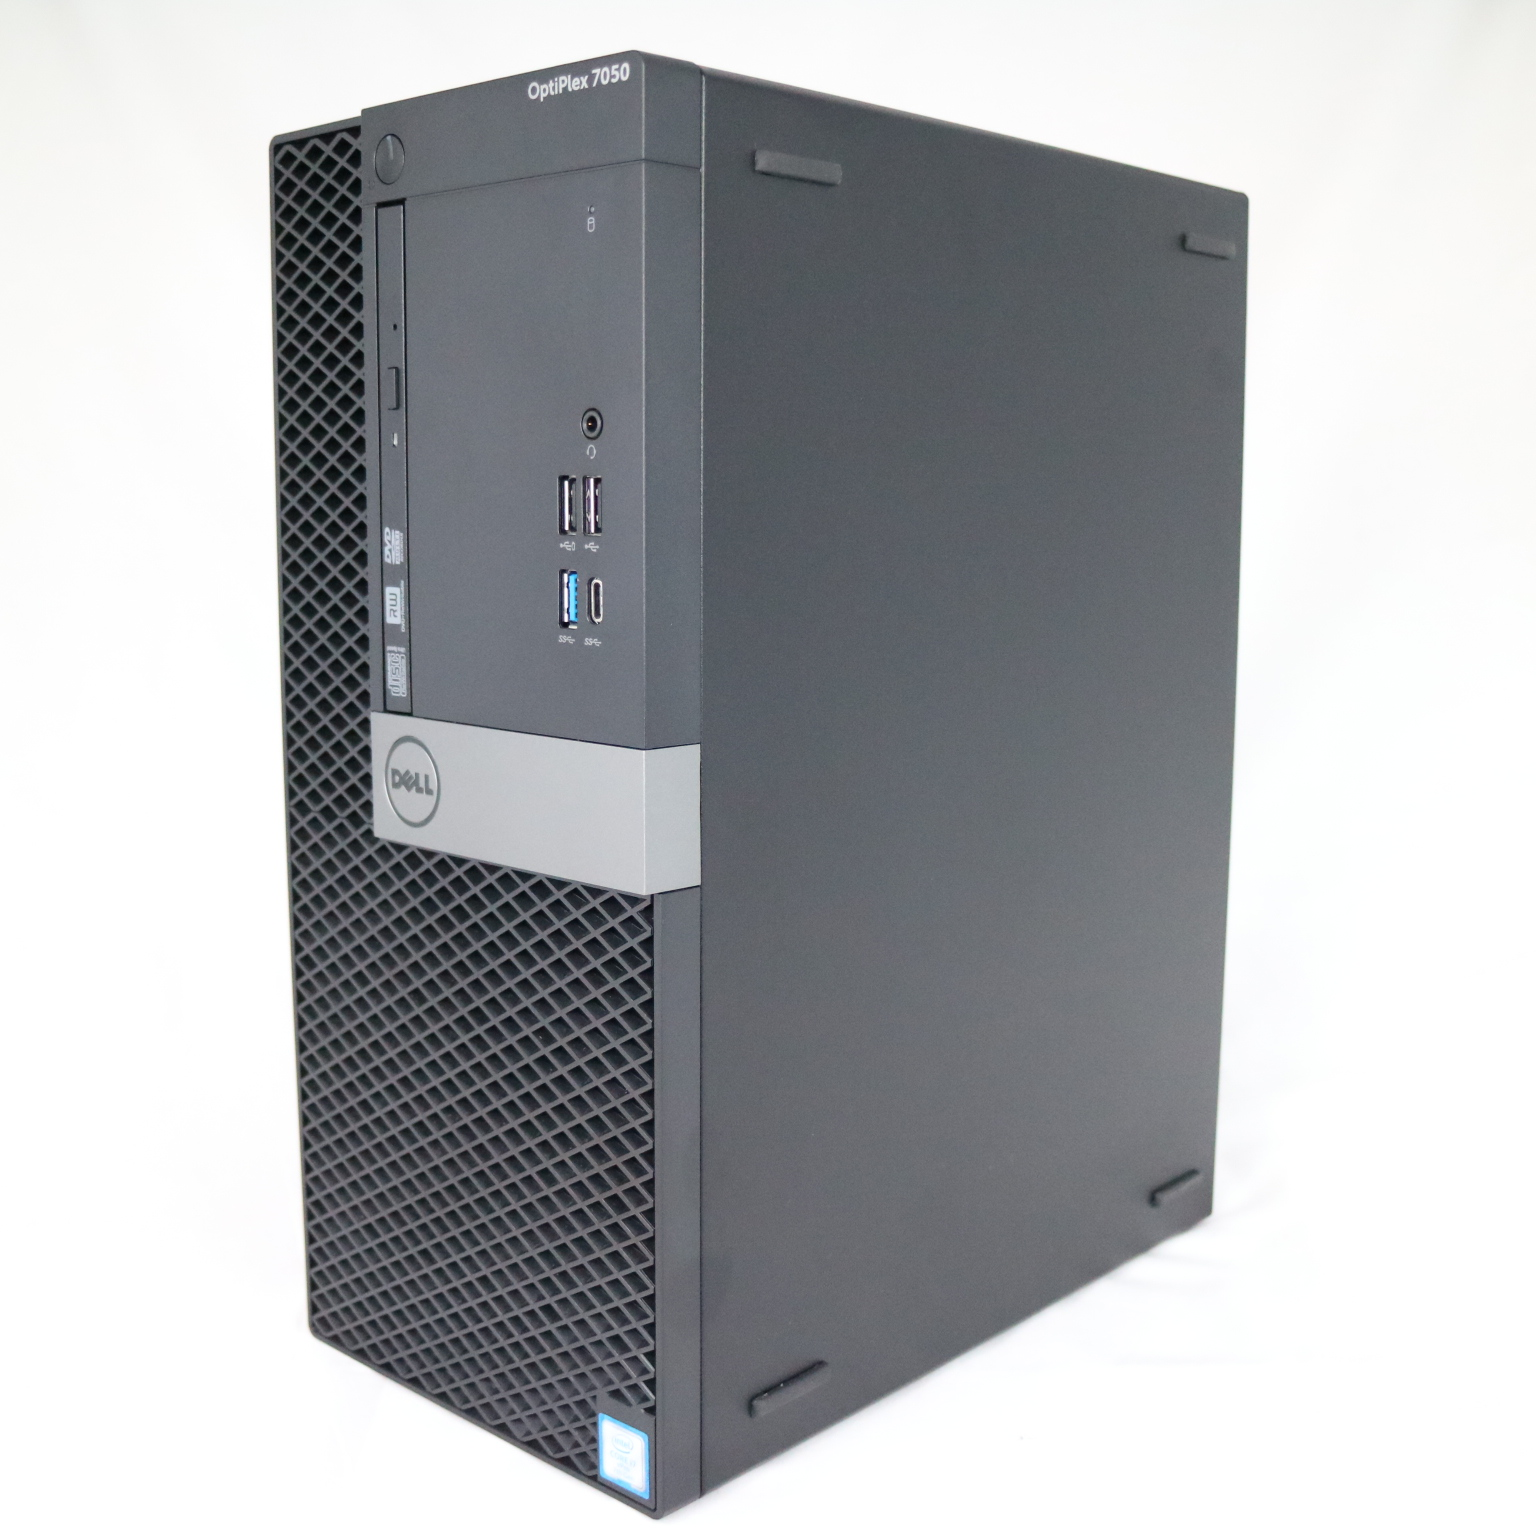 【メモリ増設】【Windows10】Optiplex 7050MT/ Core i7-7700/ 3.6GHz/ 32GB/ HDD 1TB